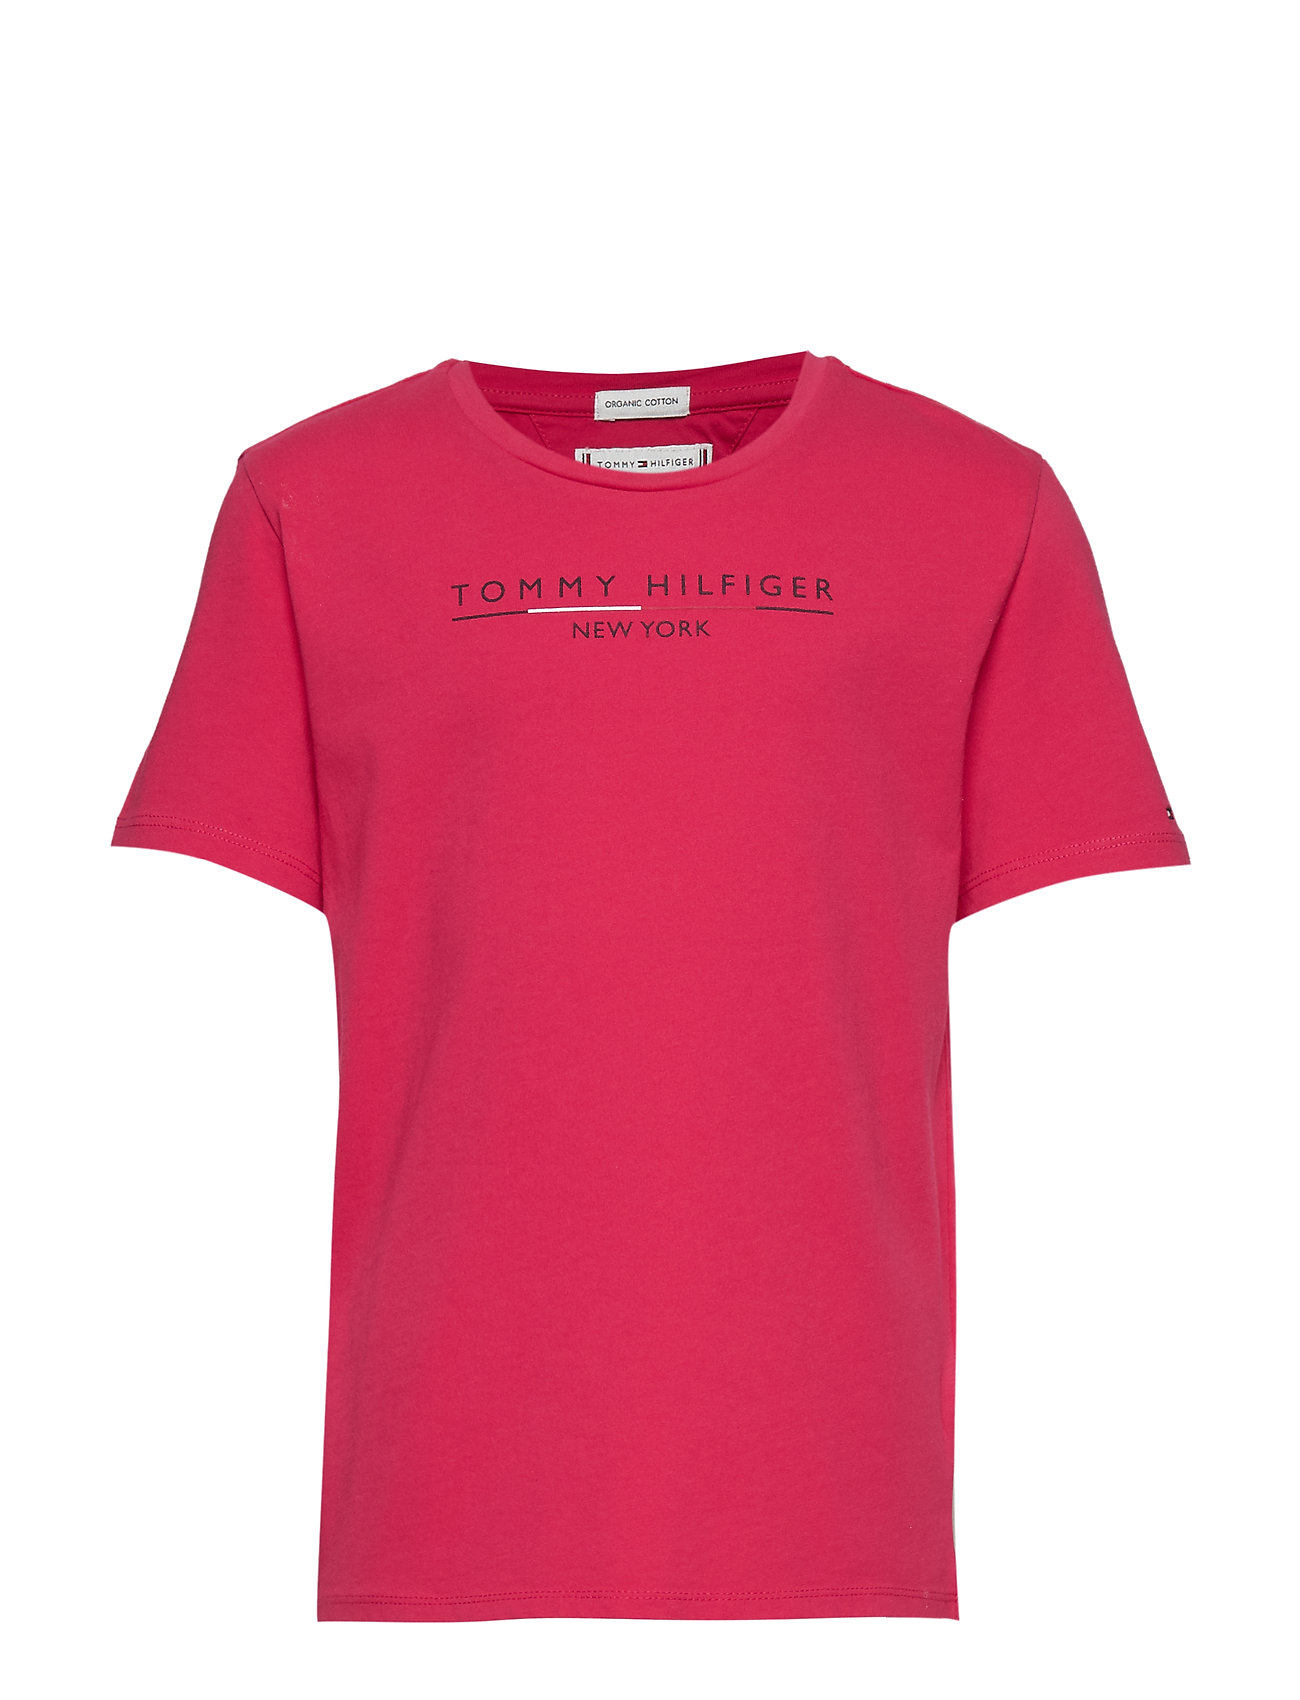 Tommy Hilfiger ESSENTIAL HILFIGER T - VIRTUAL PINK